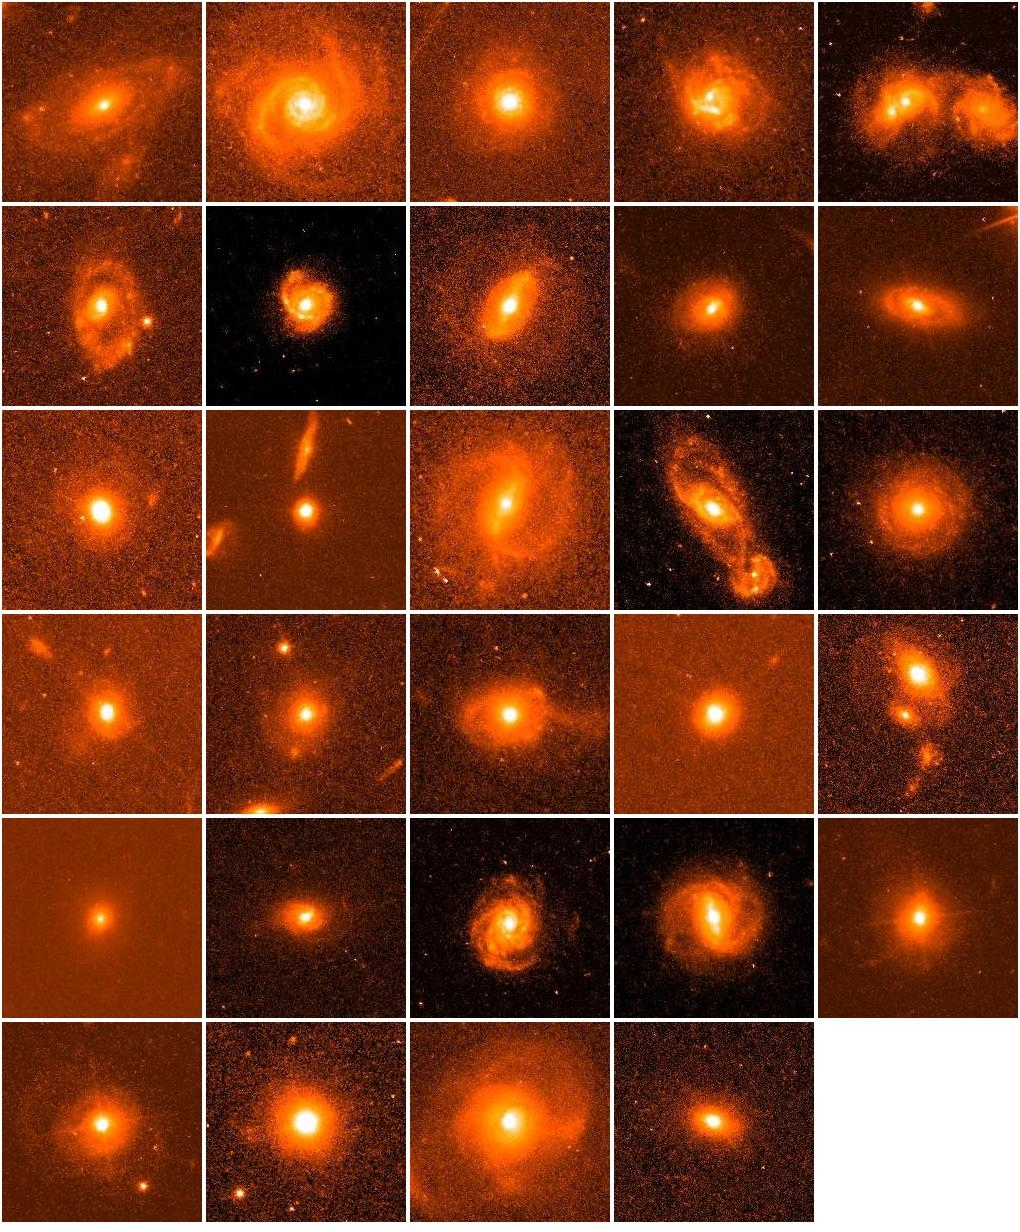 black holes in space in action - photo #21